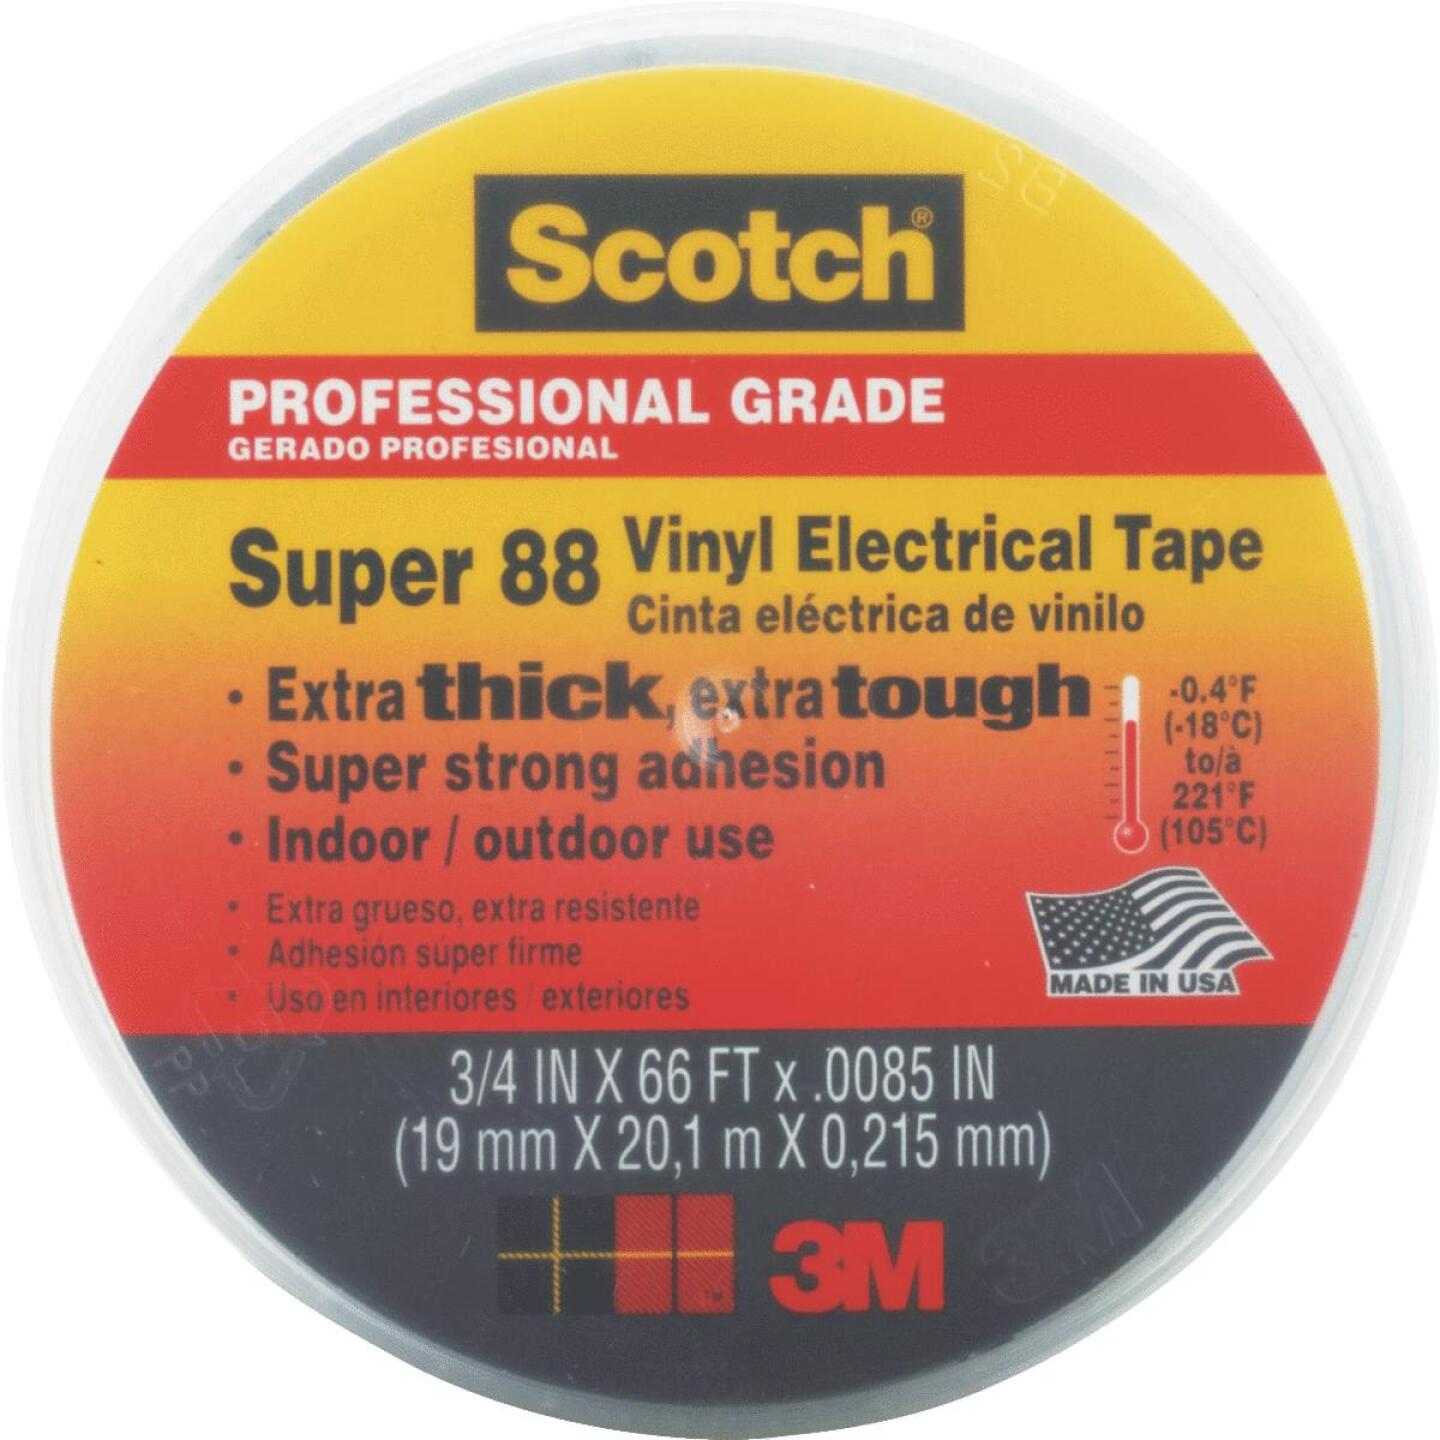 3M Scotch Weather Resistant 3/4 In. x 66 Ft. Electrical Tape Image 1